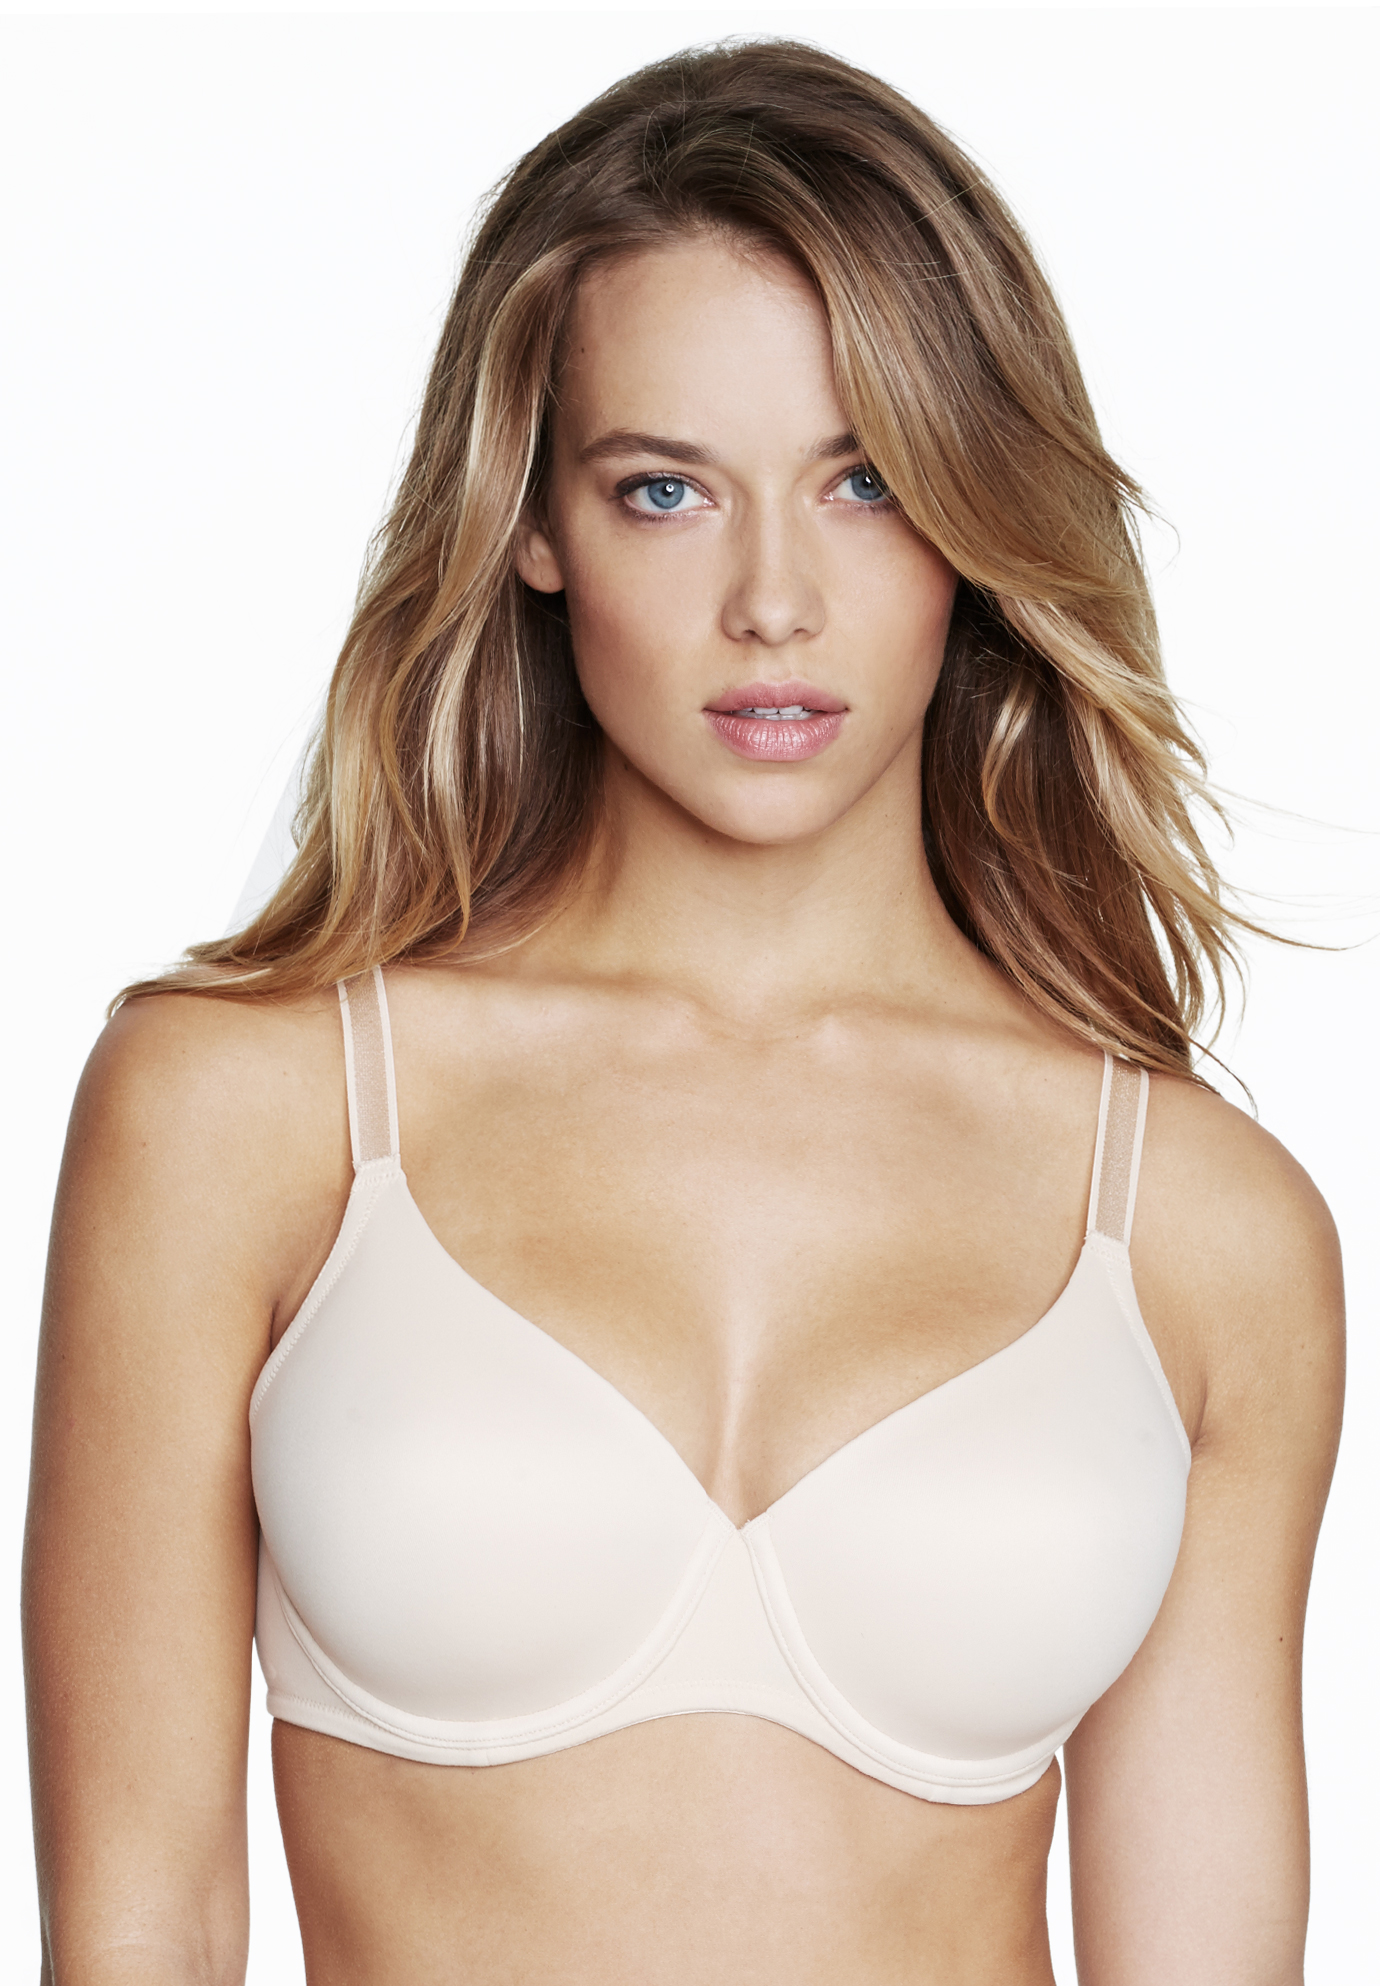 Dominique ™ Seamless Support Bra, NUDE, hi-res